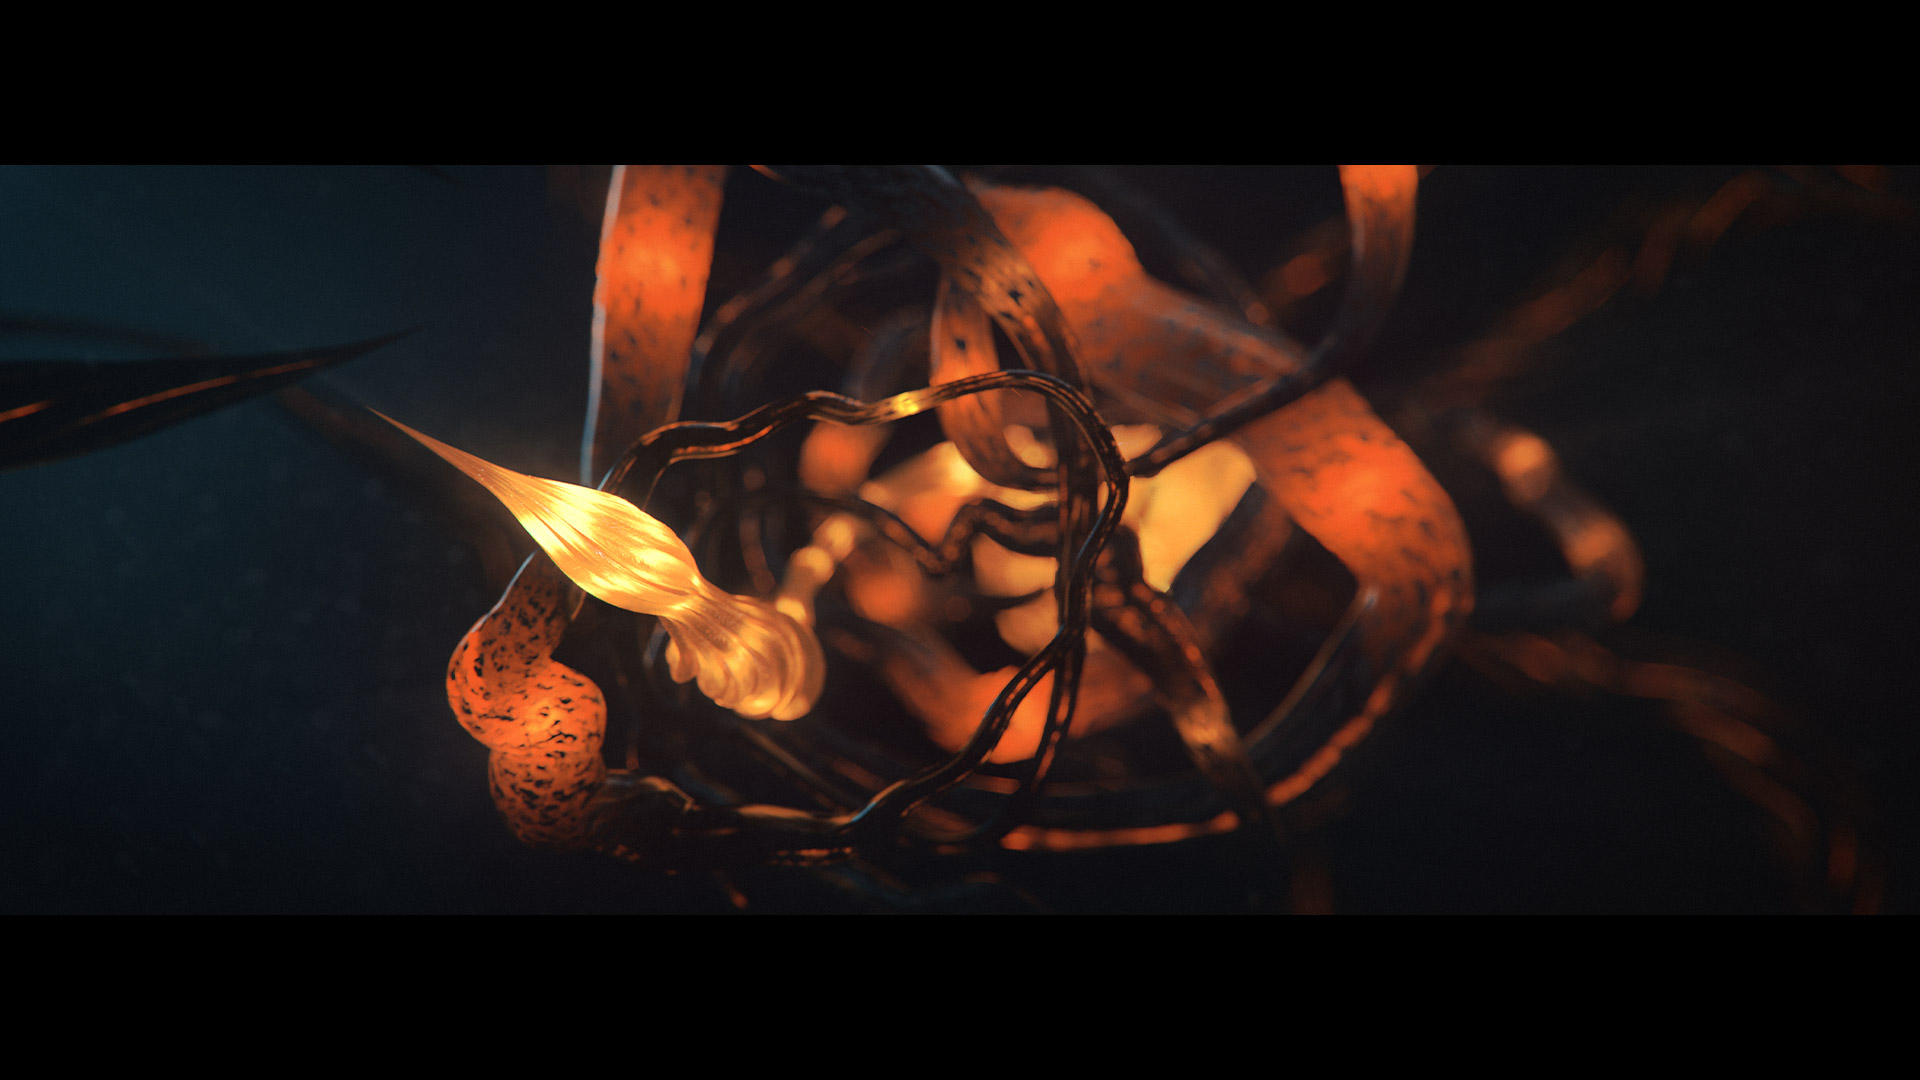 Organic glowing CGI scene with tentacles and glass worms